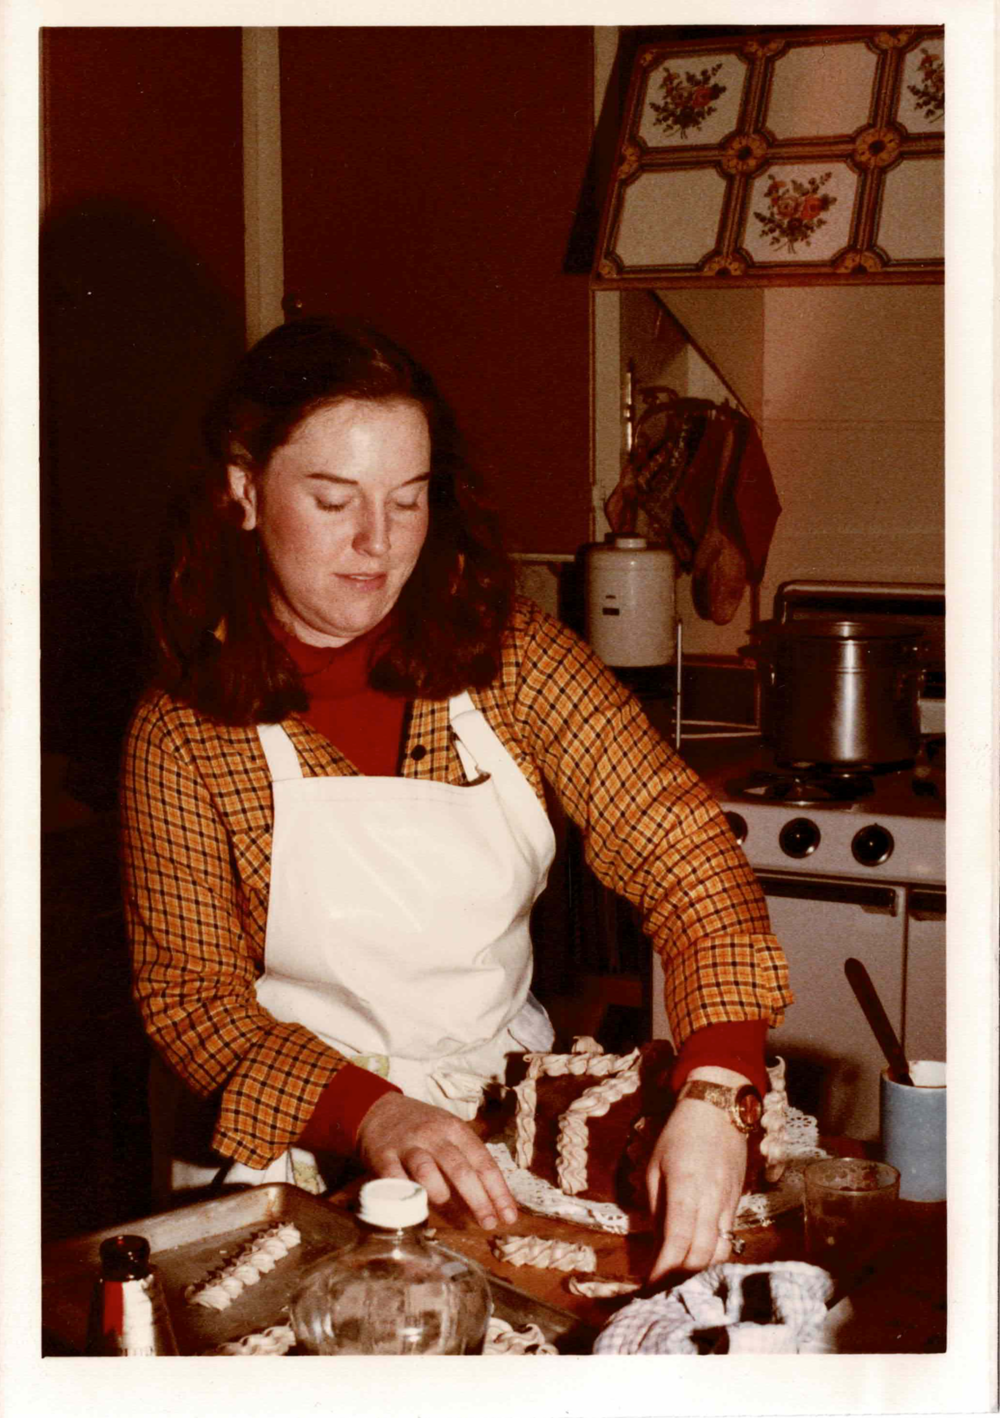 Kay Pratt, our Founder's mom, assembling a cake